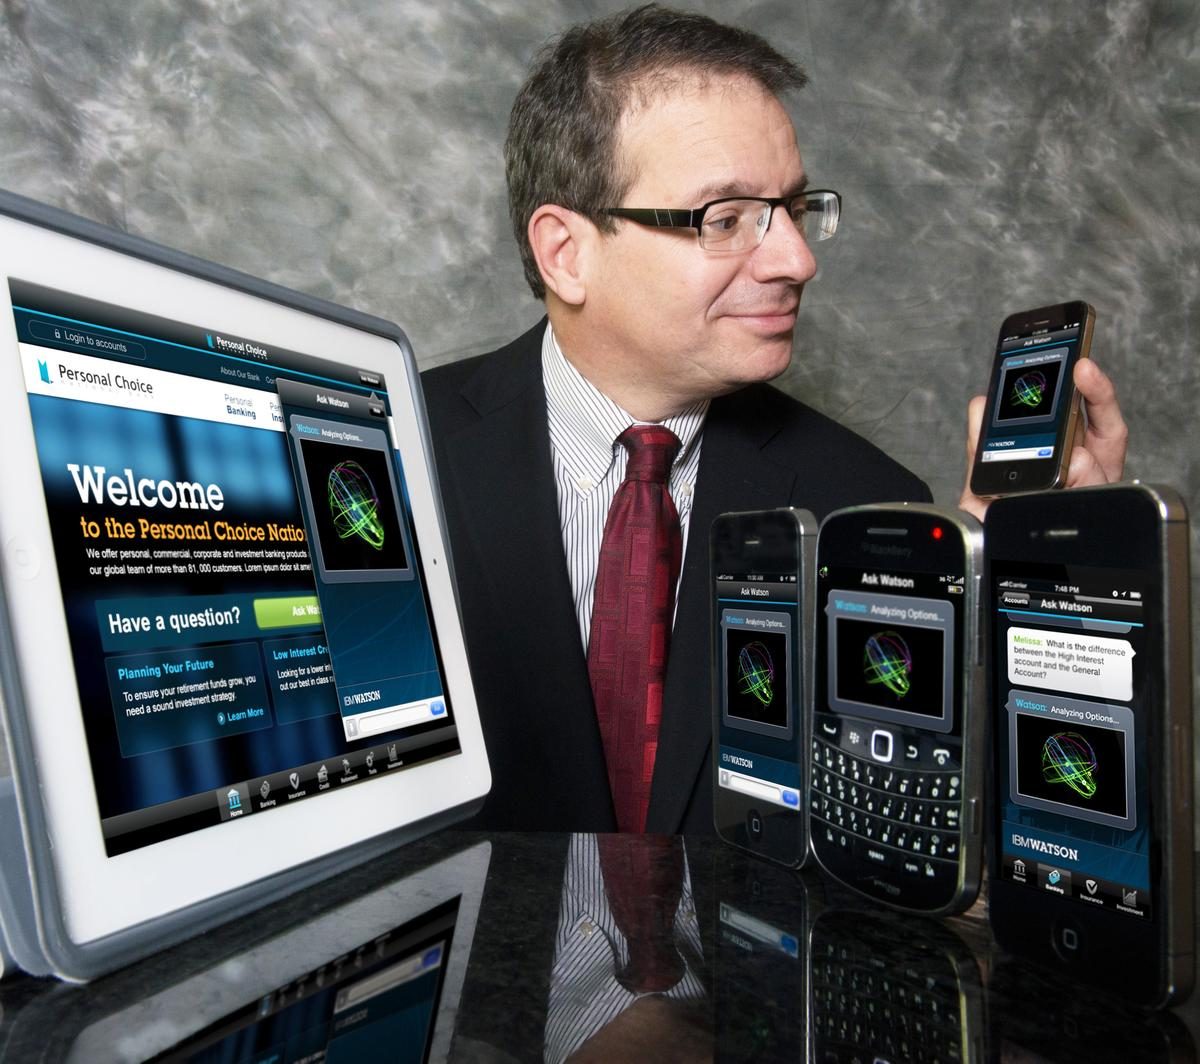 IBM Watson Solutions VP Stephen Gold interacts with the new IBM Watson Engagement Advisor